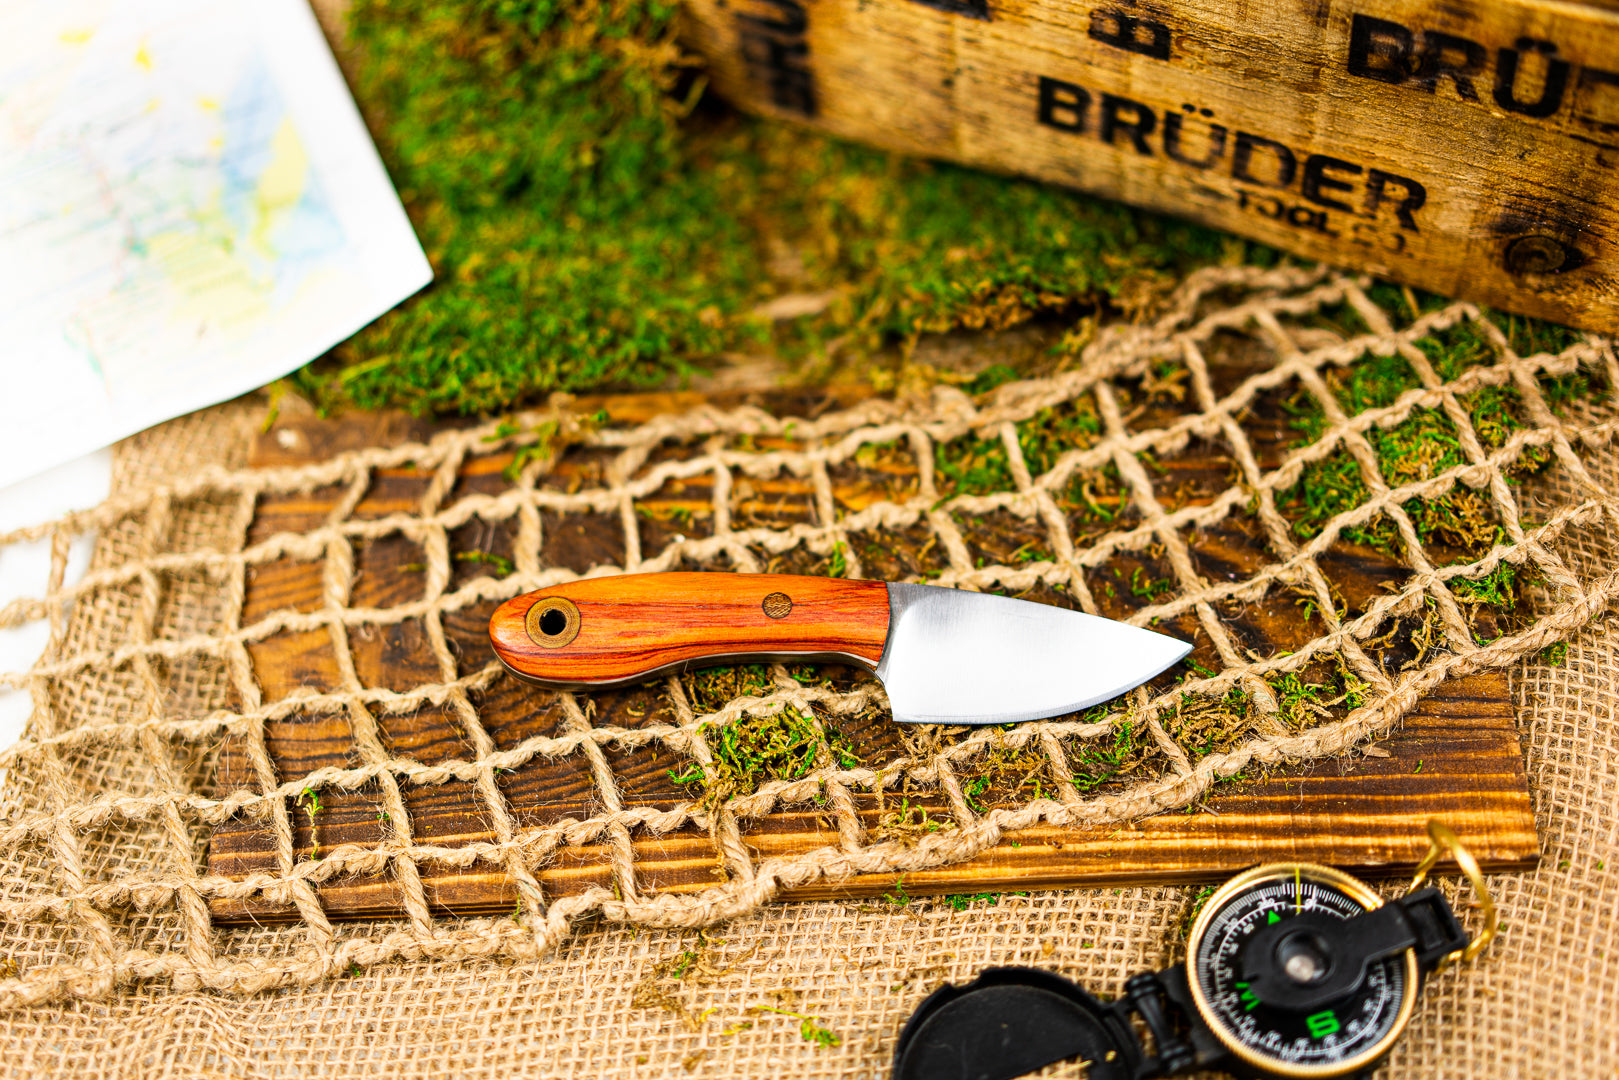 Brüder Skinner/EDC knife - Canary Wood